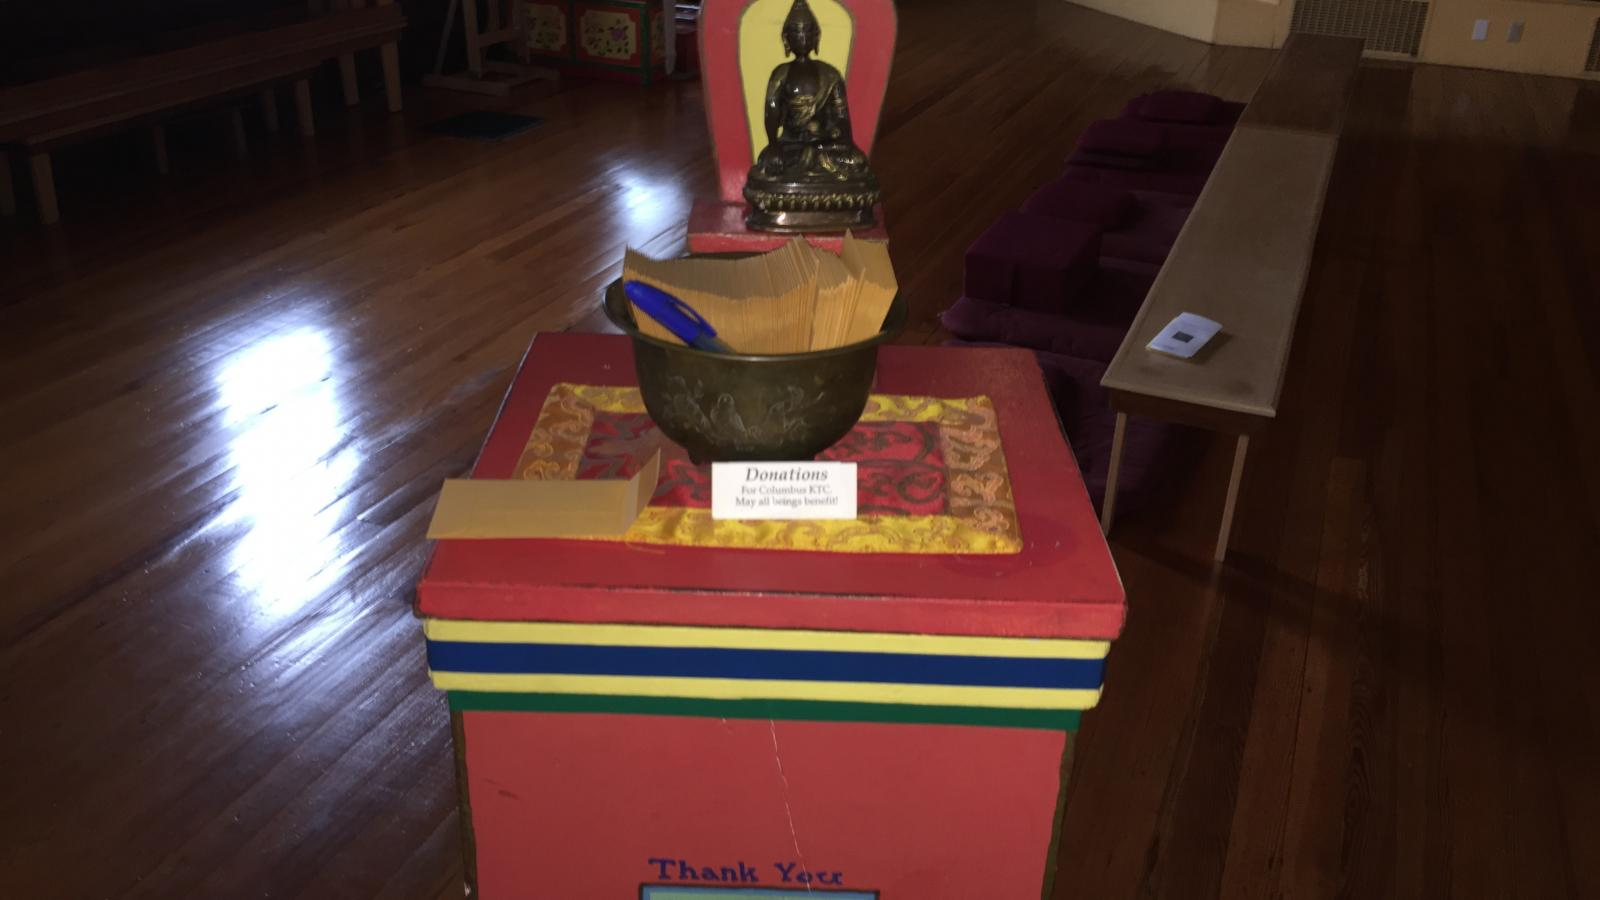 Donation box for the Karma Thegsum Choling Meditation Center